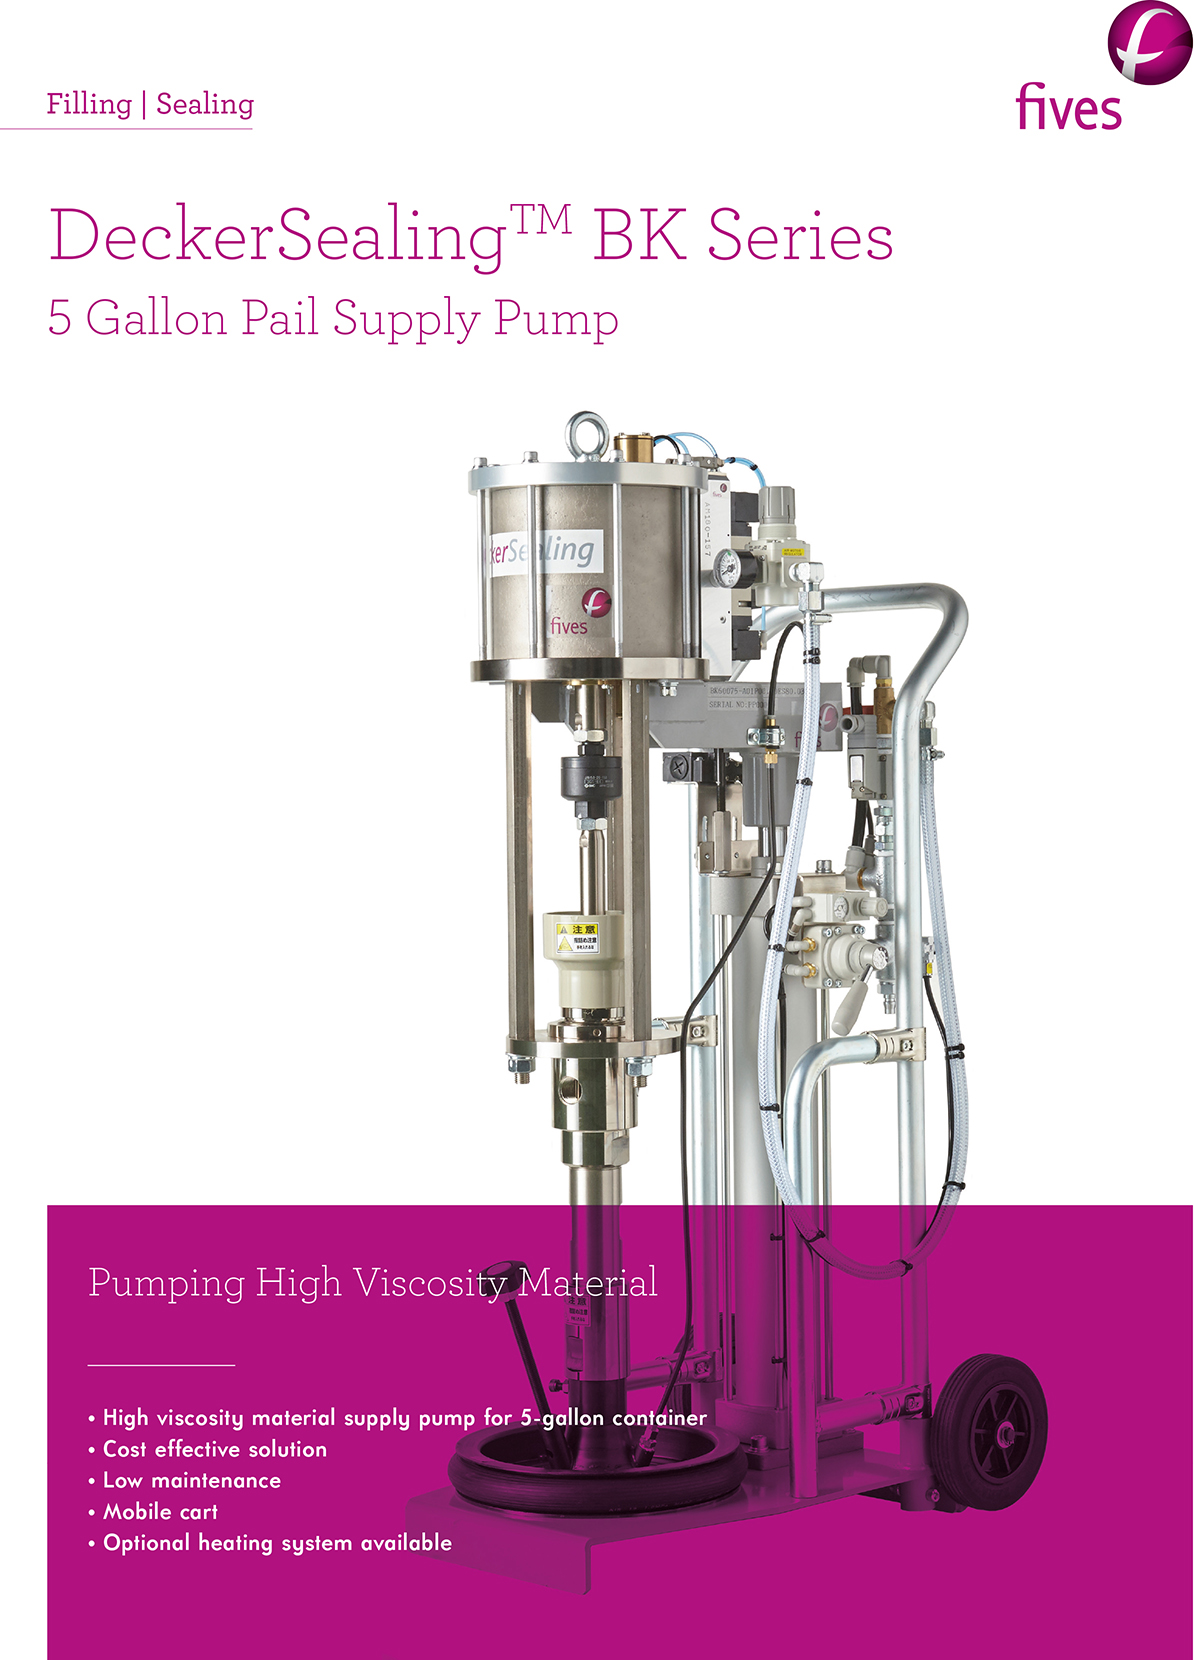 Download-FIVES SEALING 5GallonPailSupplyPump-FIVES